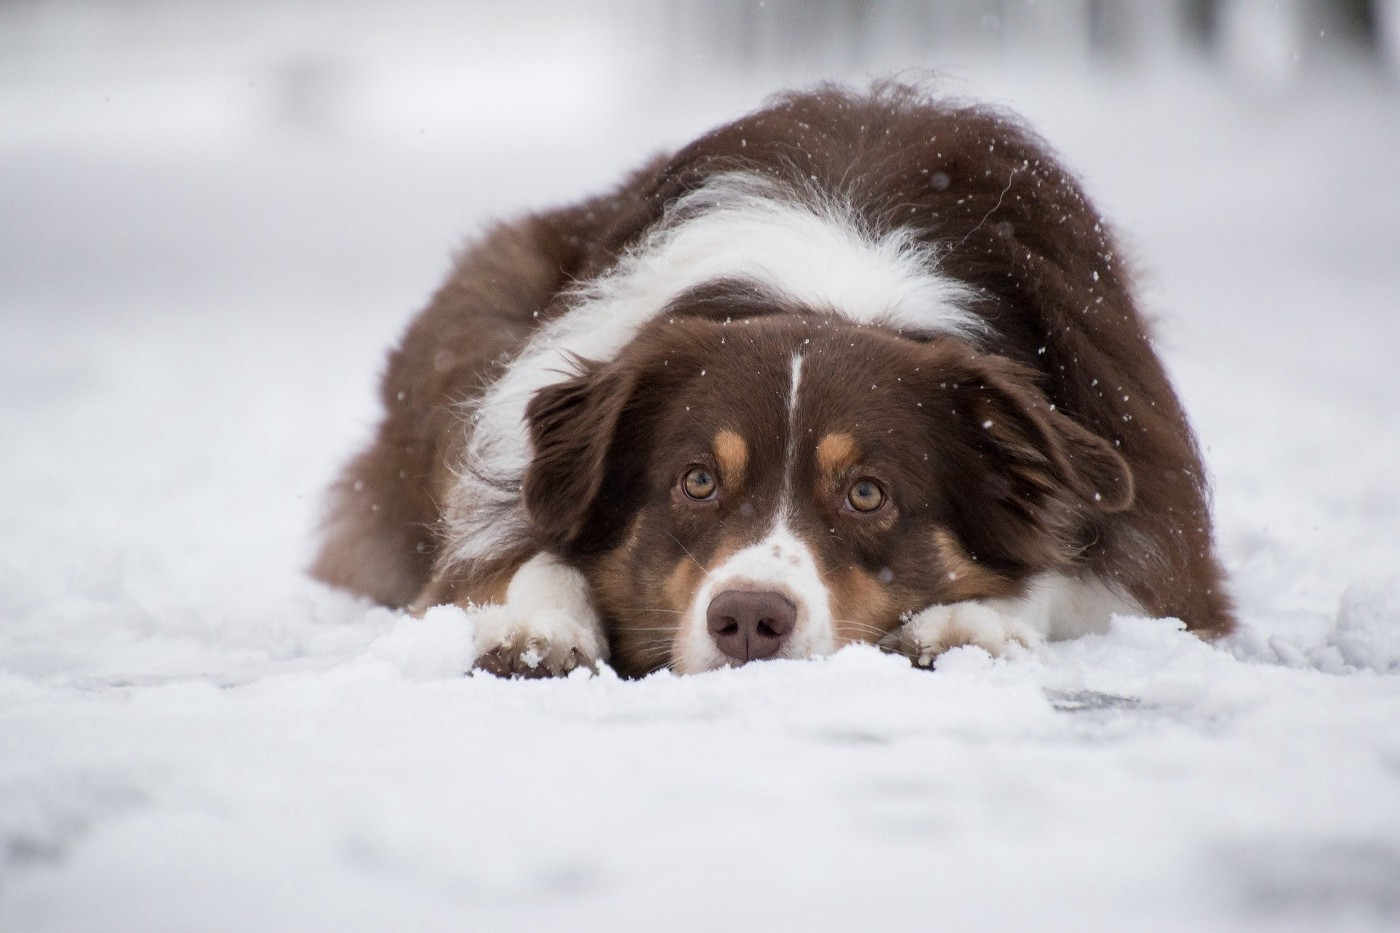 Cute dog lying in the snow